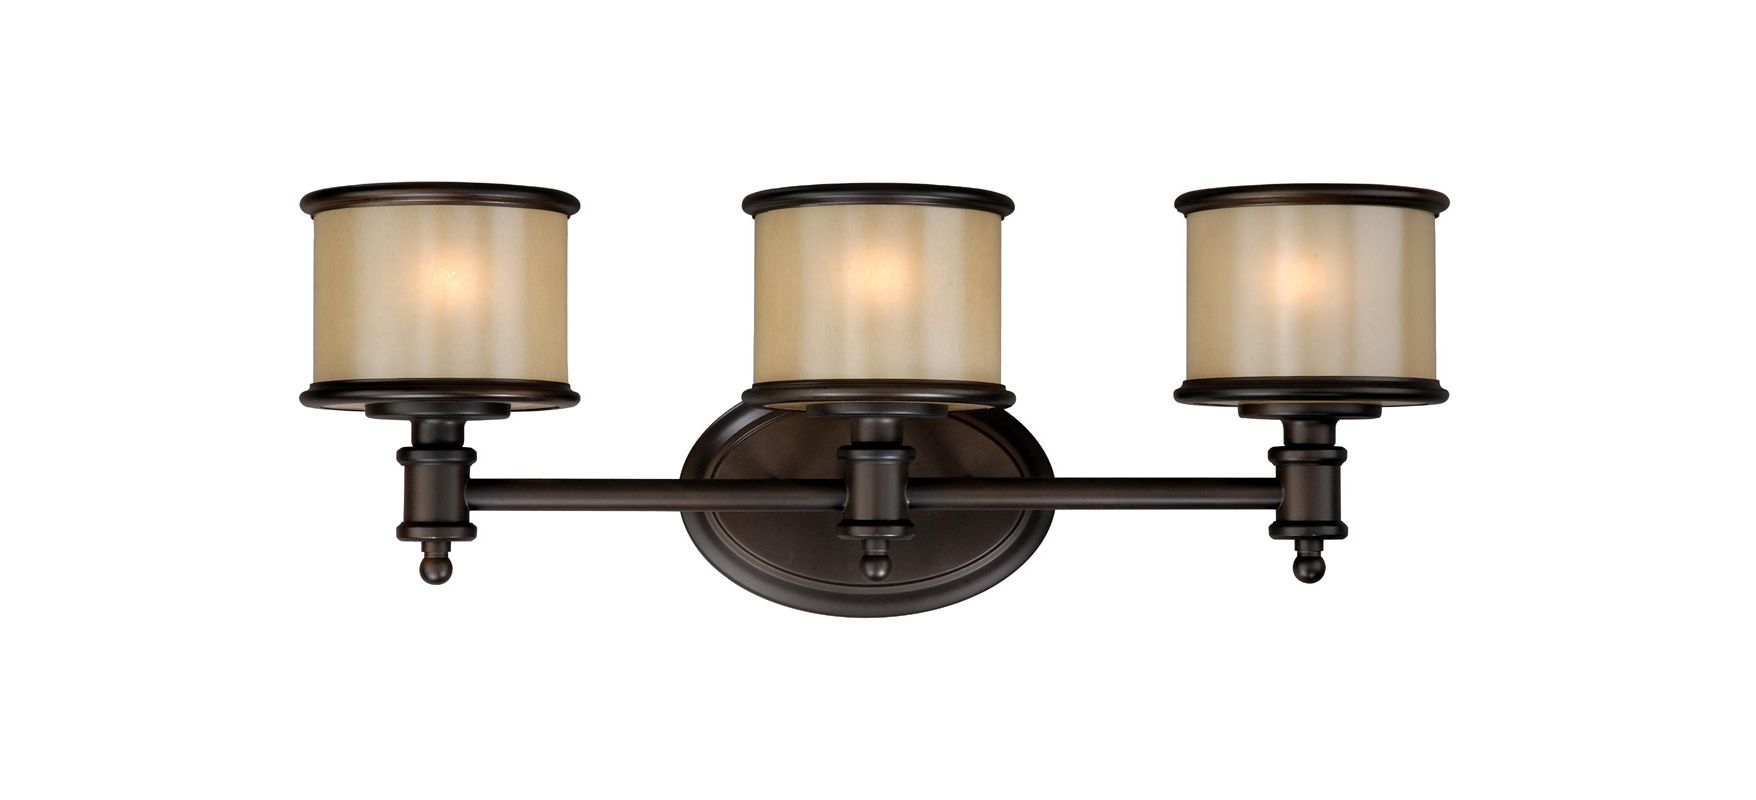 Vaxcel Lighting CR-VLU003 Carlisle 3 Light Bathroom Vanity Light - 22